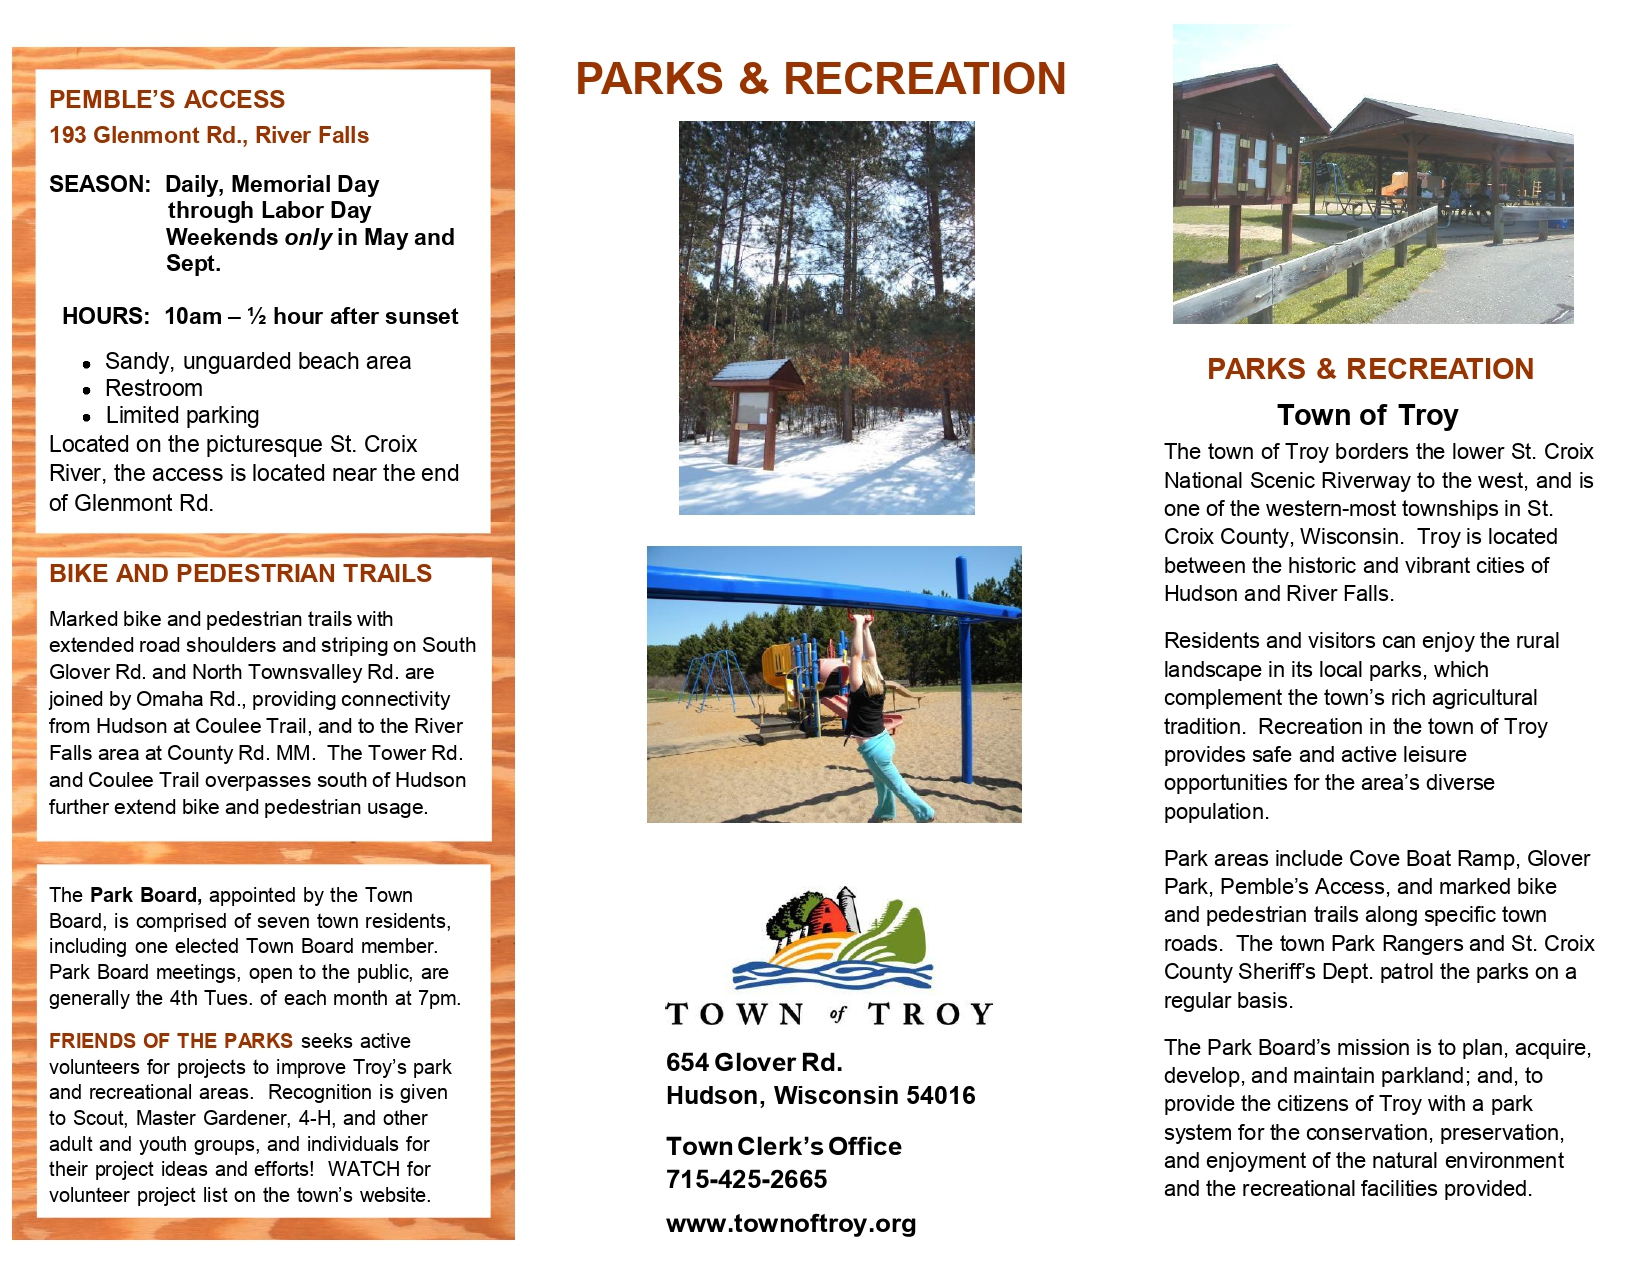 Park Brochure – Town of Troy